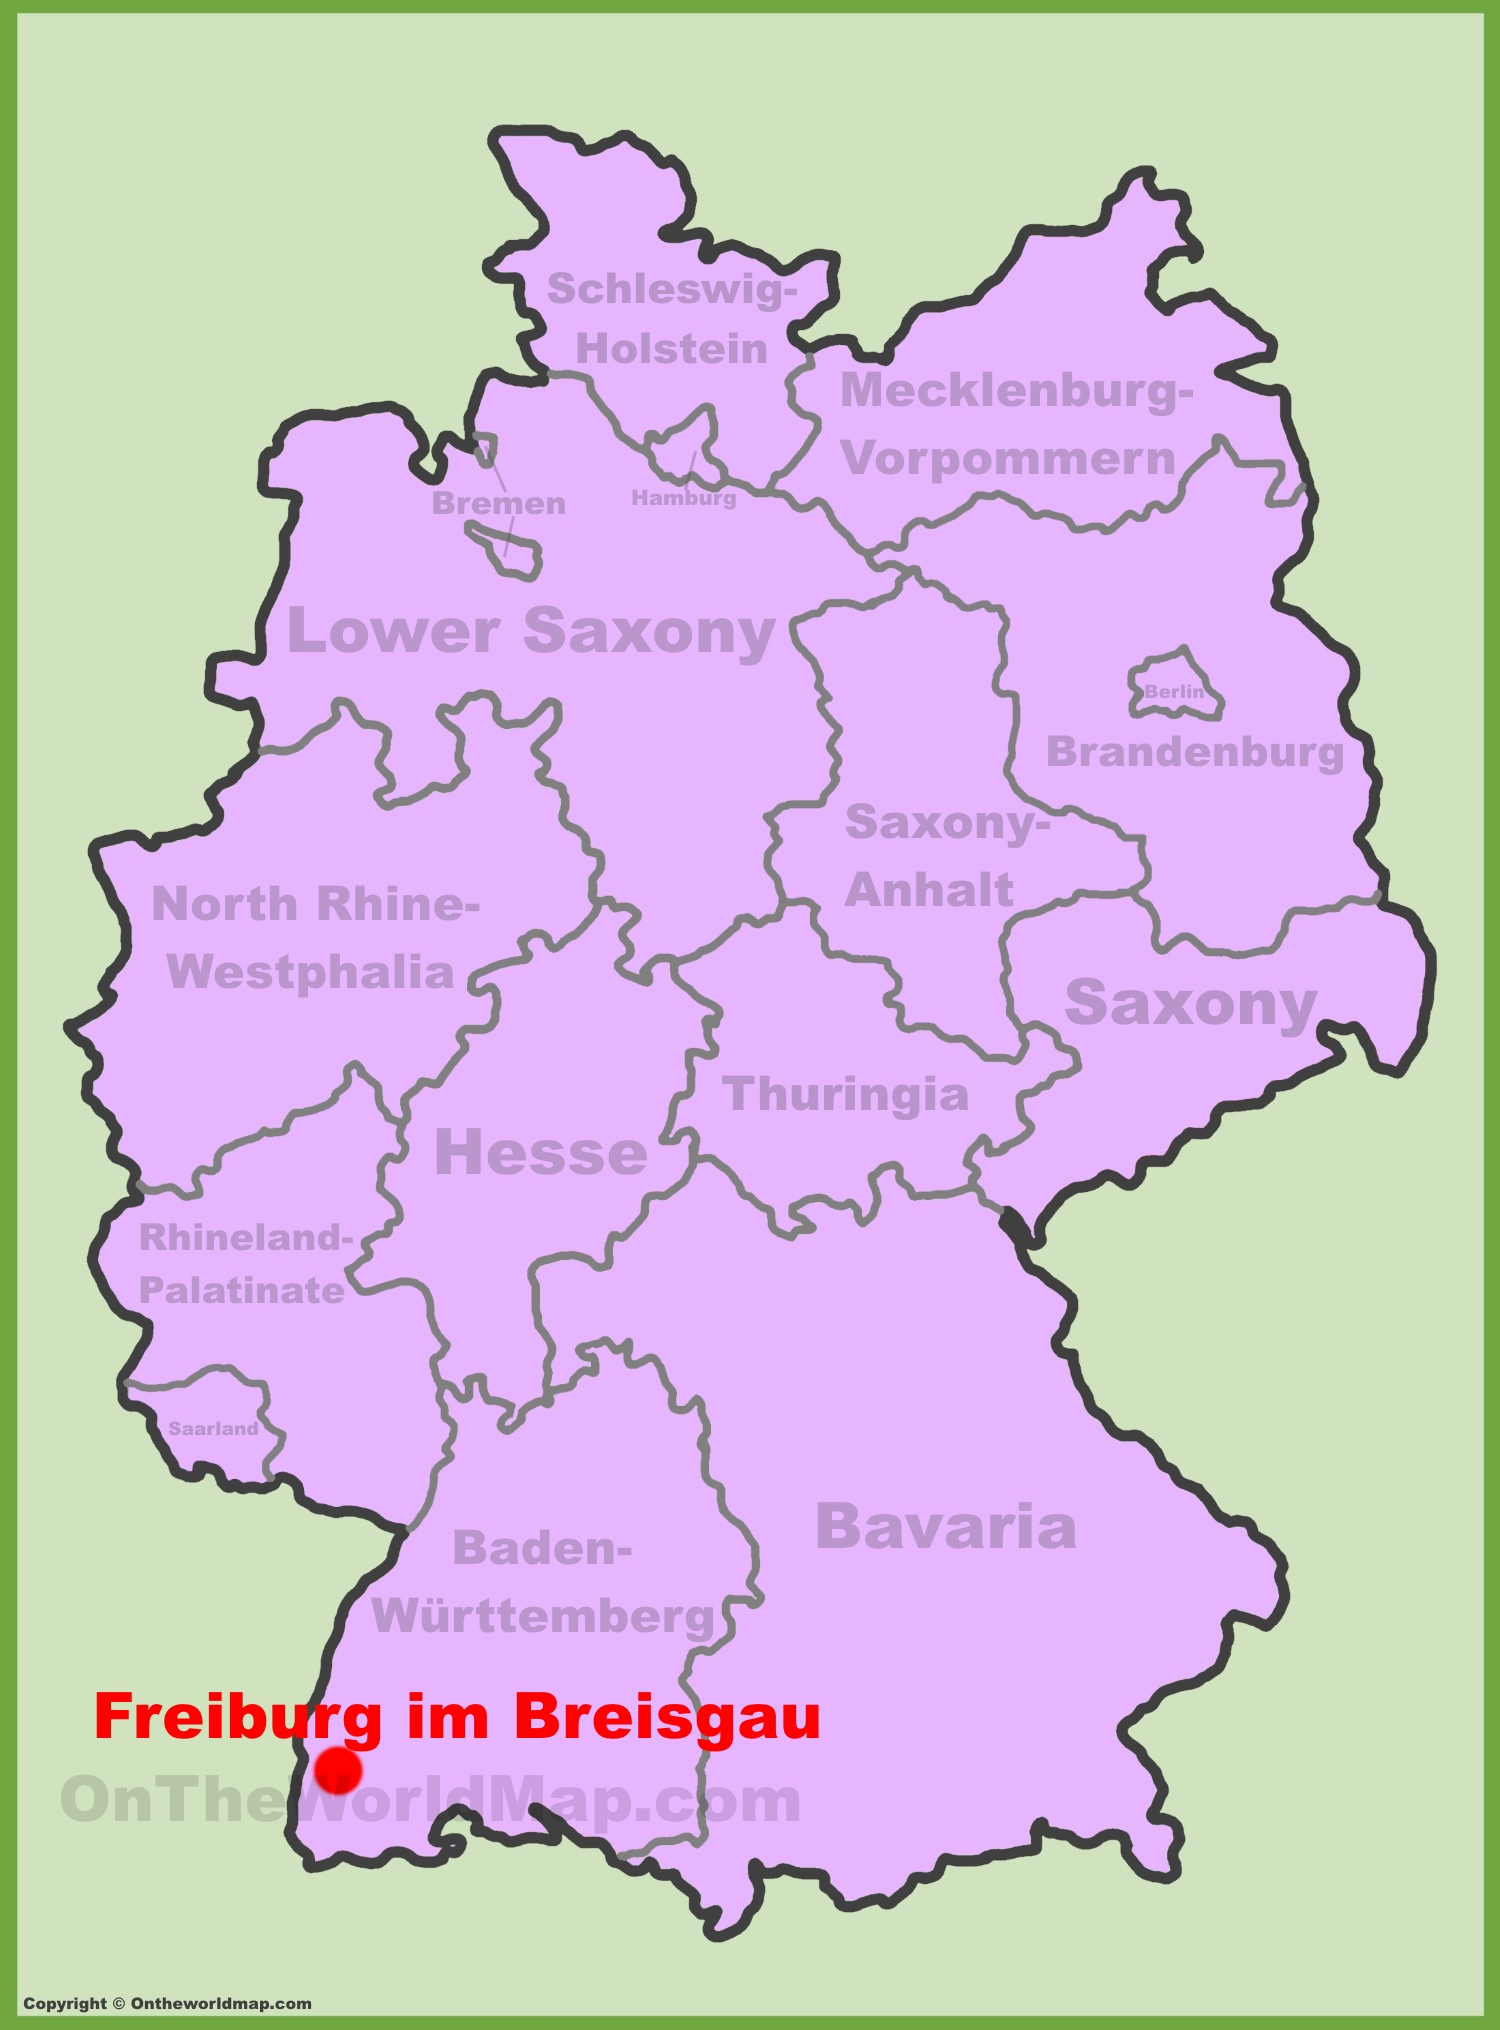 Freiburg location on the Germany map